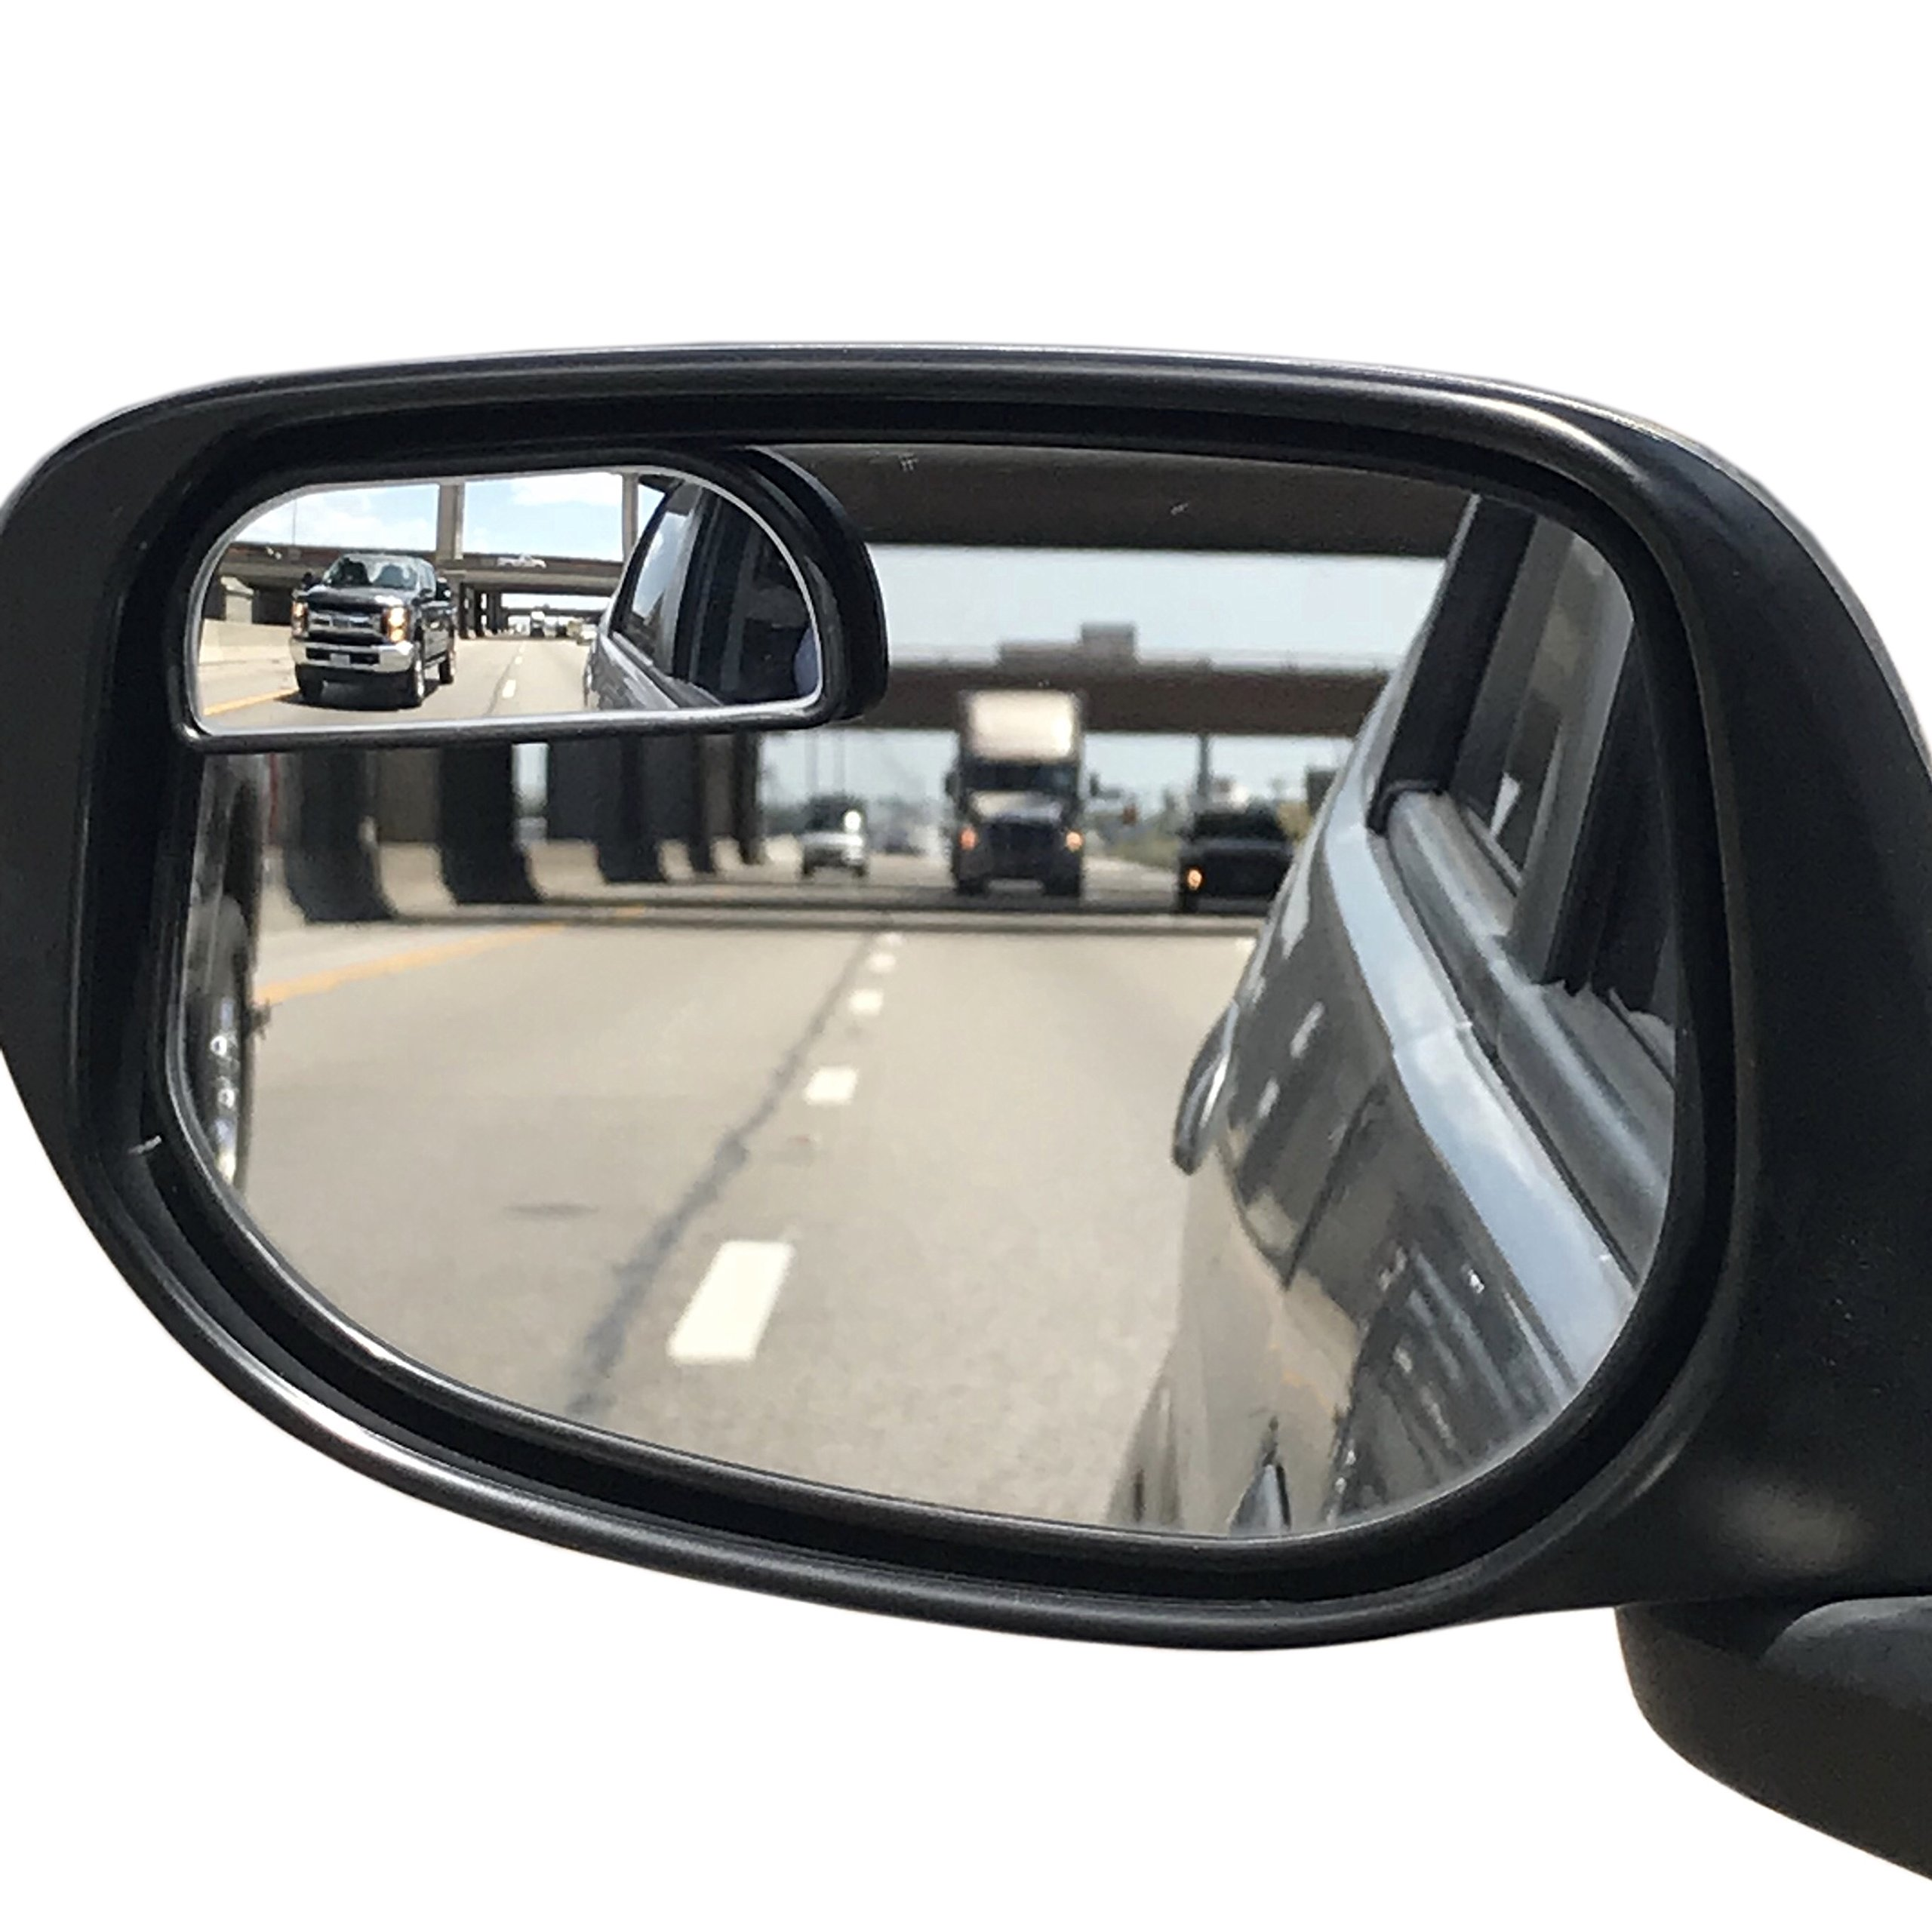 Utopicar Blind Spot Mirrors – Updated Design - Car Mirror for Blind Side - Door Mirrors for Large Image [Adjustable] (2 Pack)